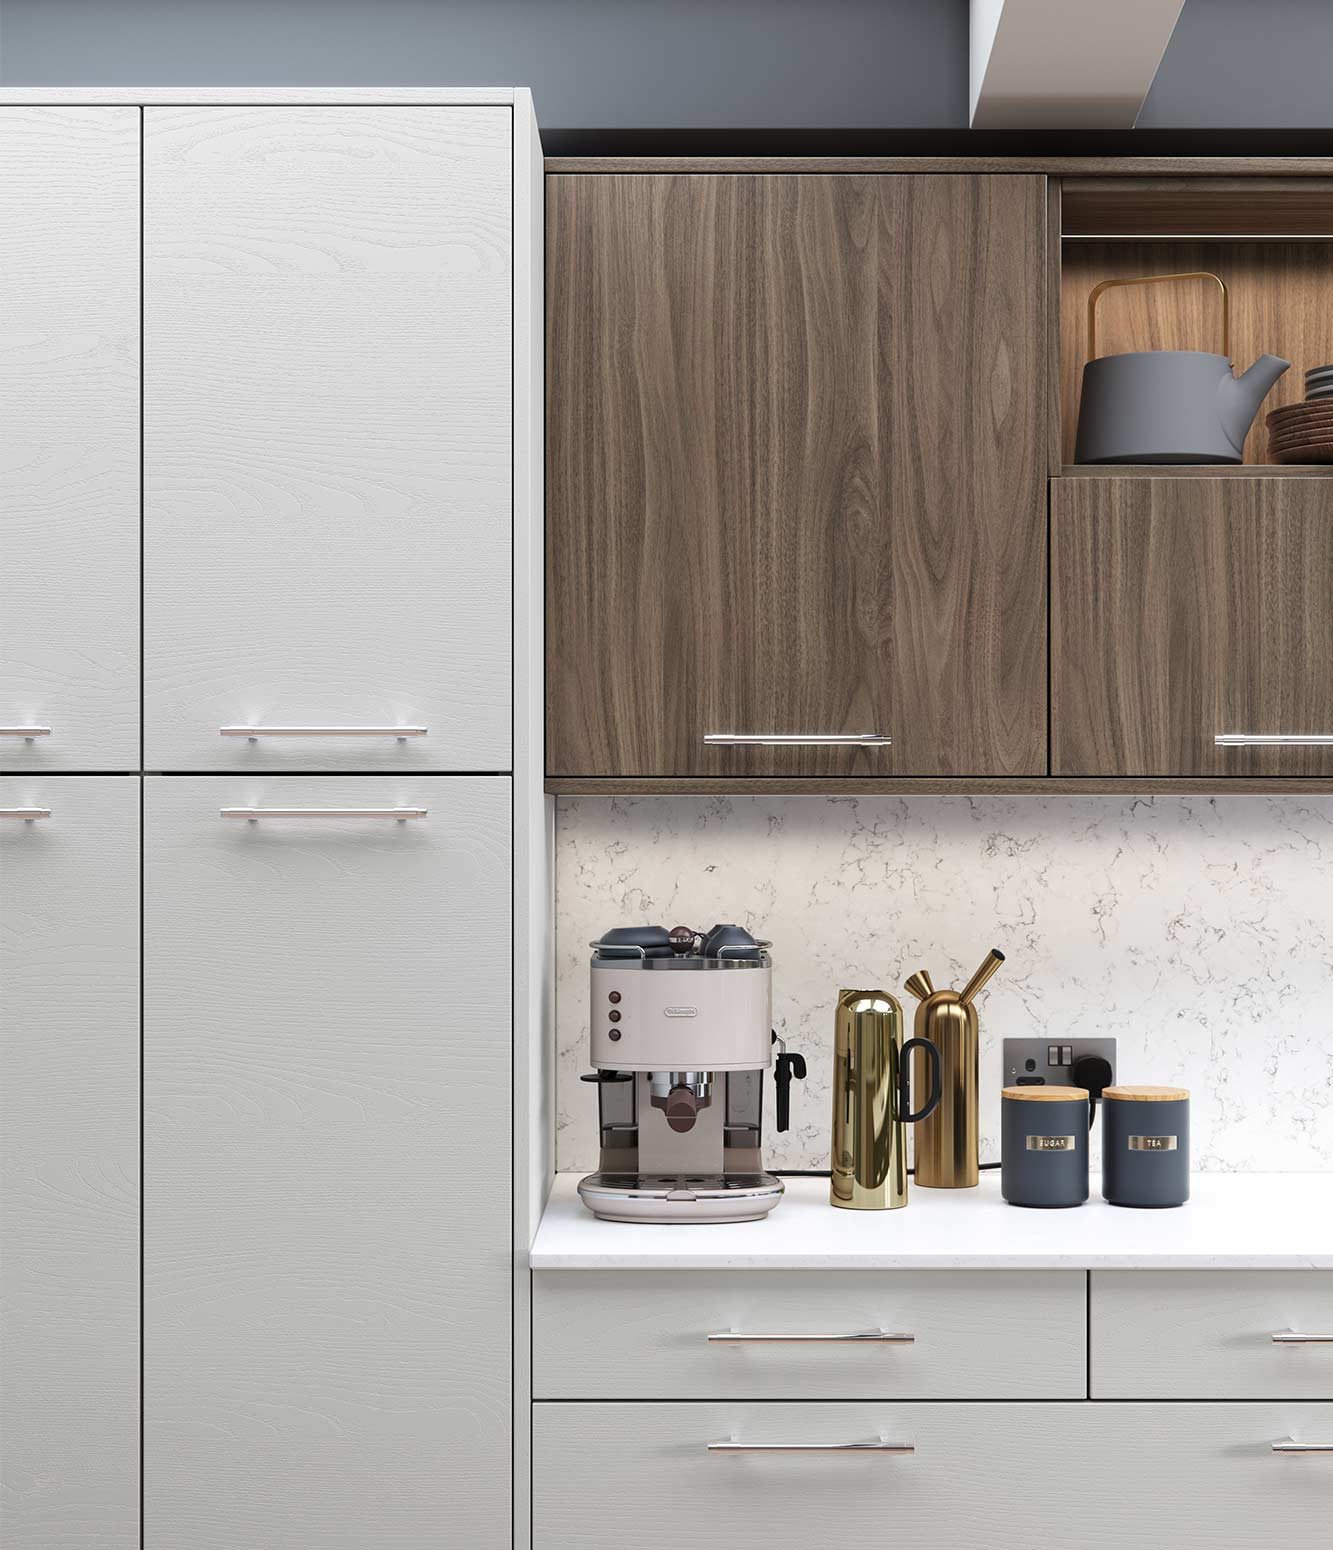 Masterclass-kitchen-Larna-light-grey-graphite-madoc-tuscan-walnut-cameo-2